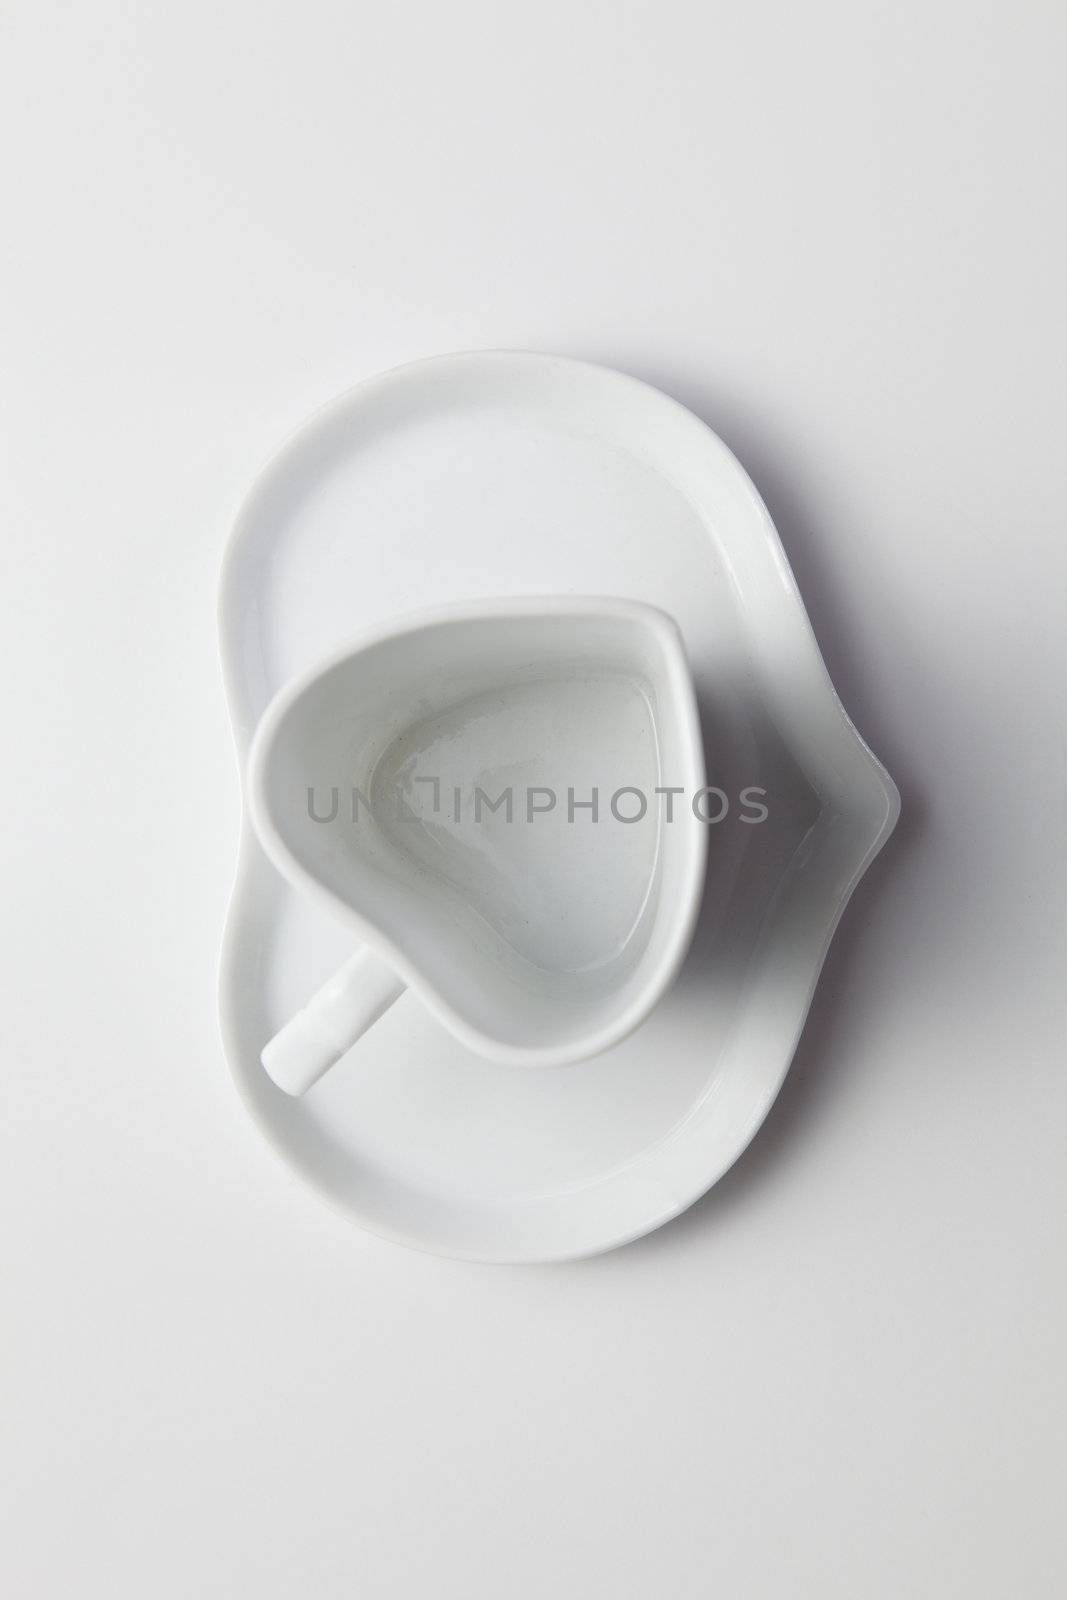 heart shape of coffee cup on the plain background